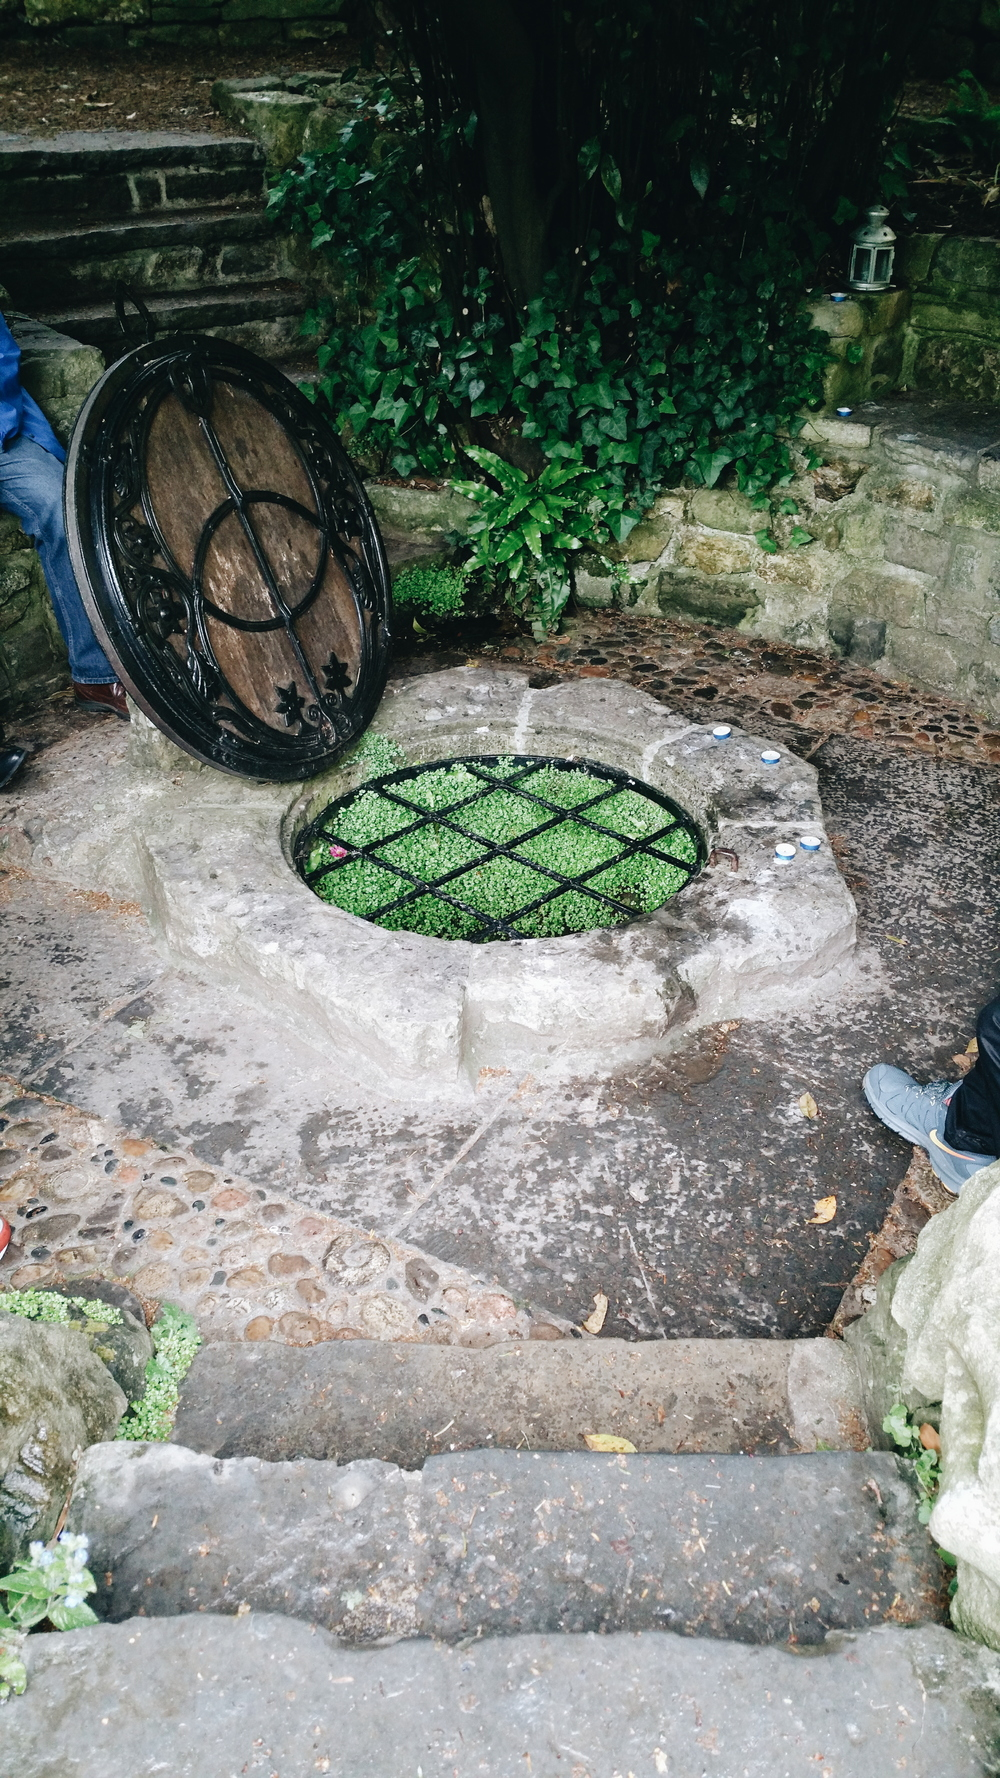 A view of the well at Chalice Well Gardens